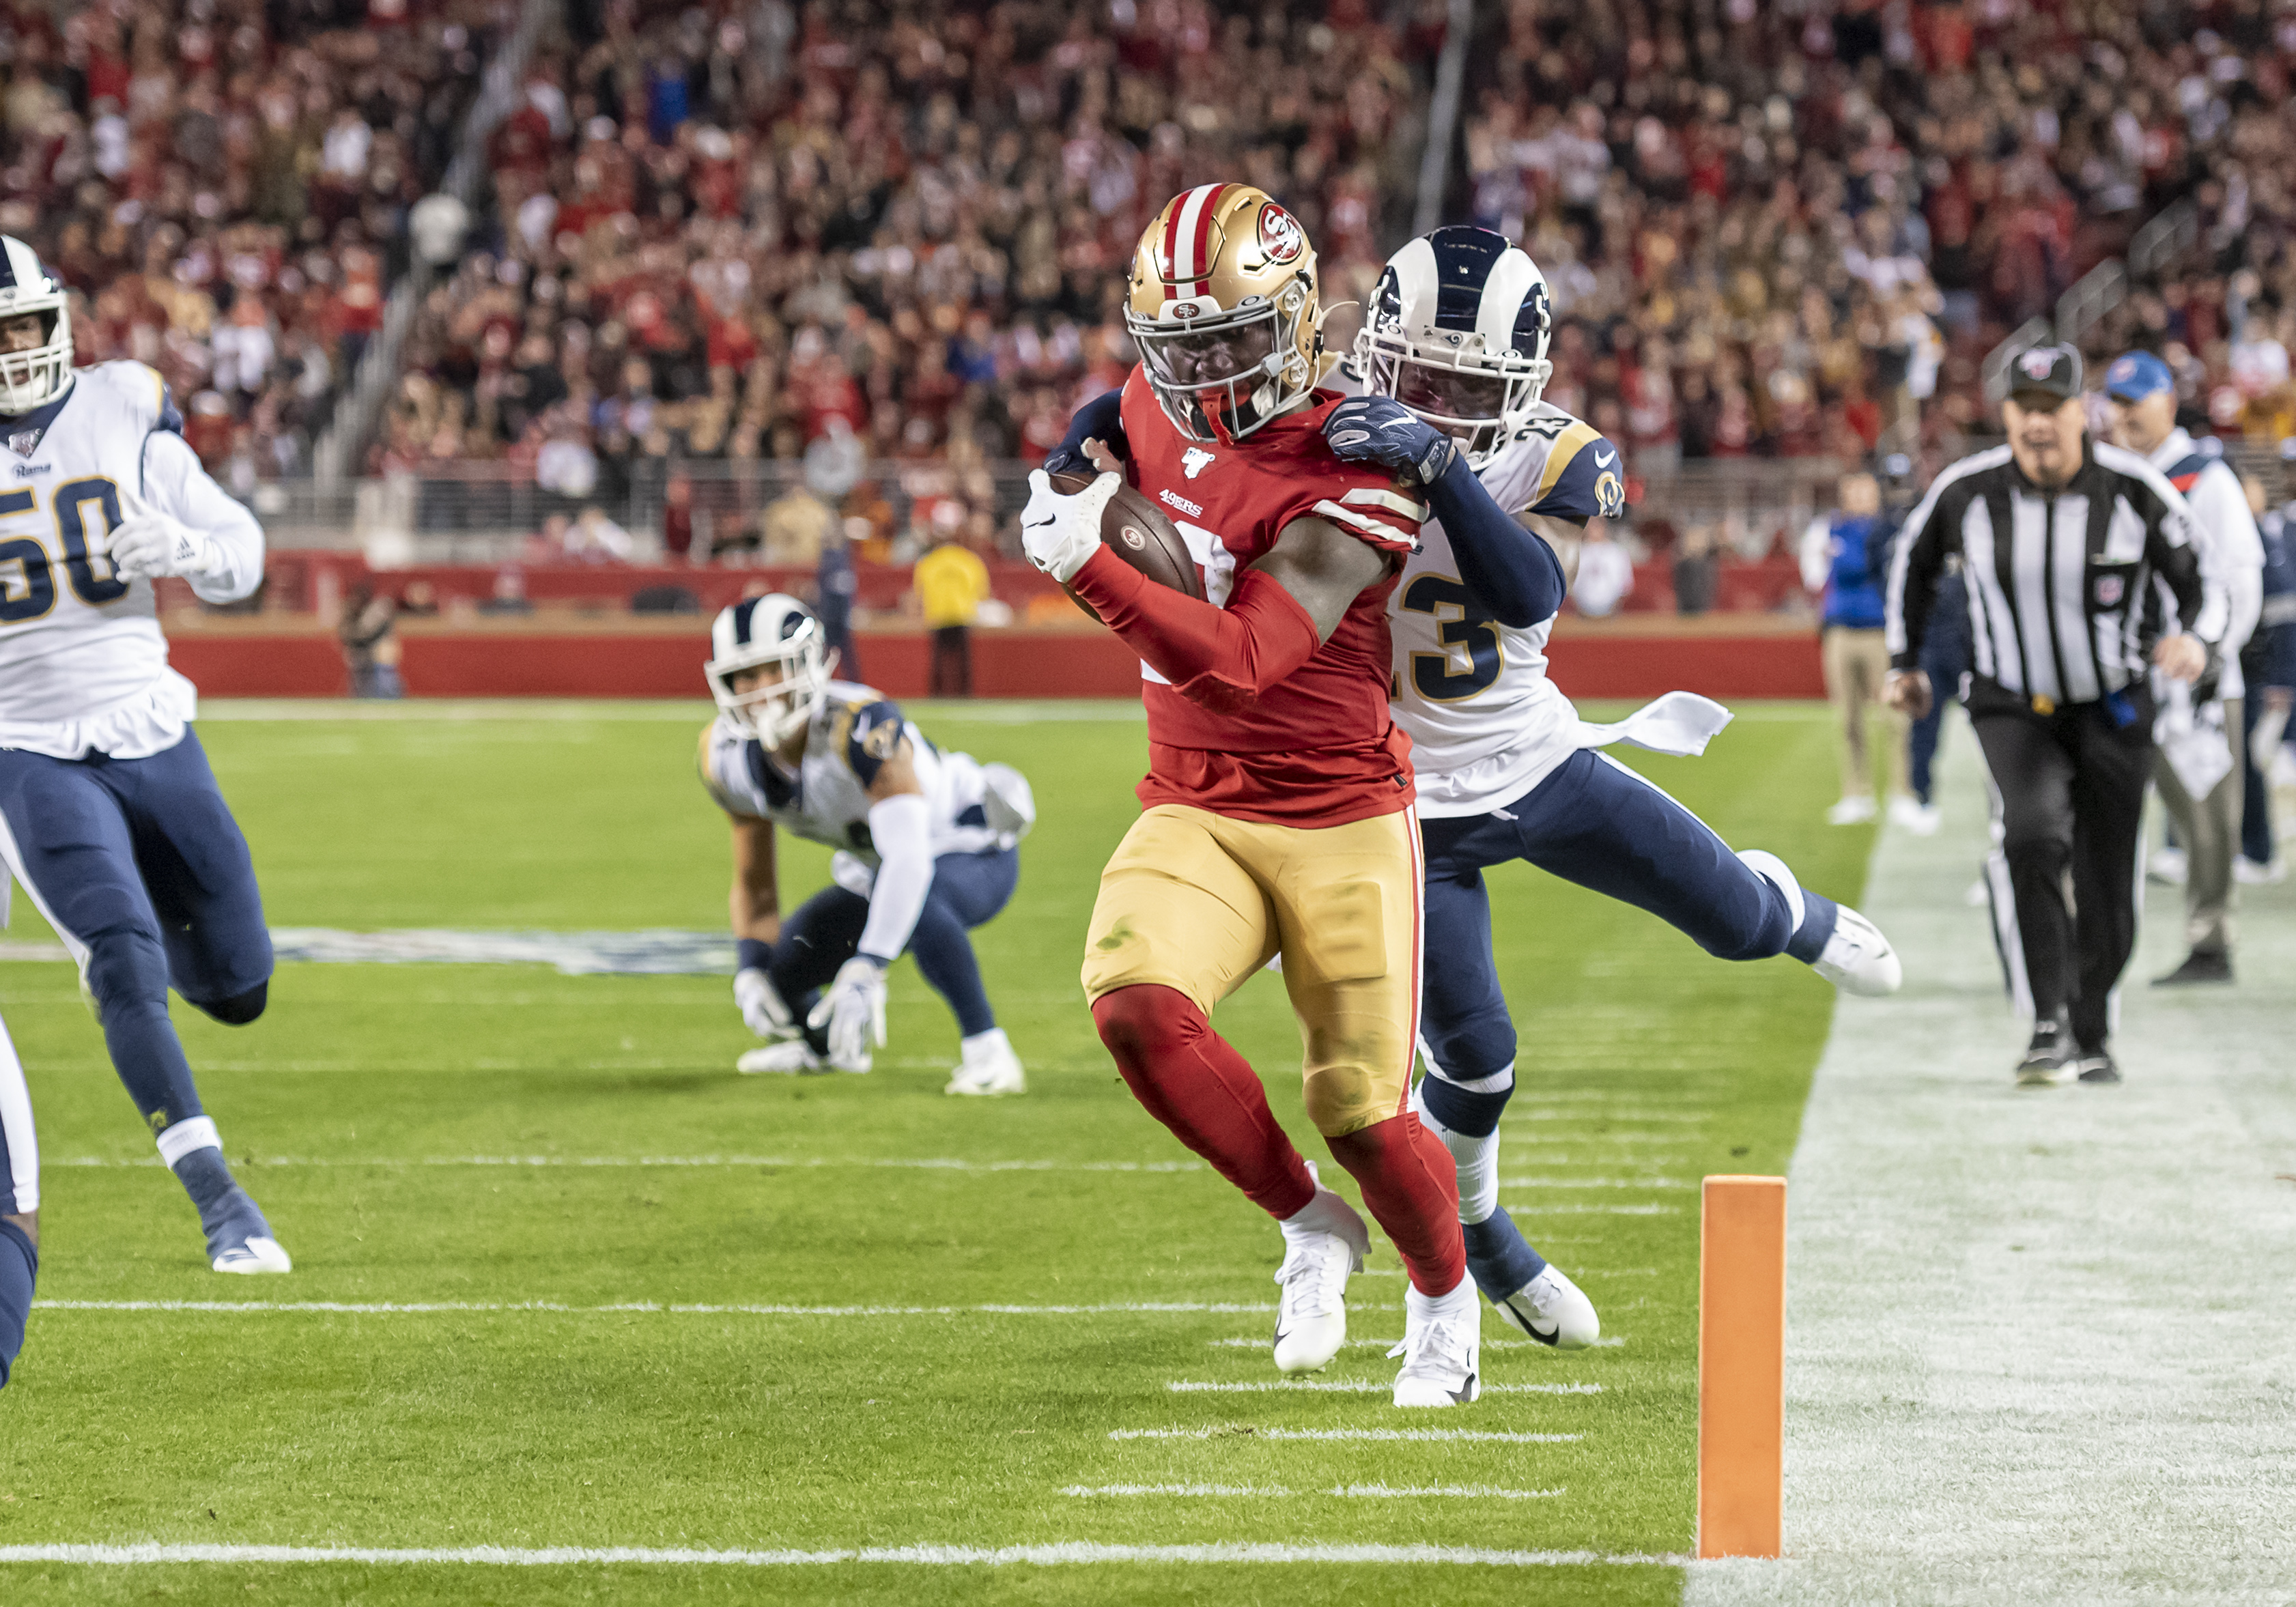 NFL: DEC 22 Rams at 49ers